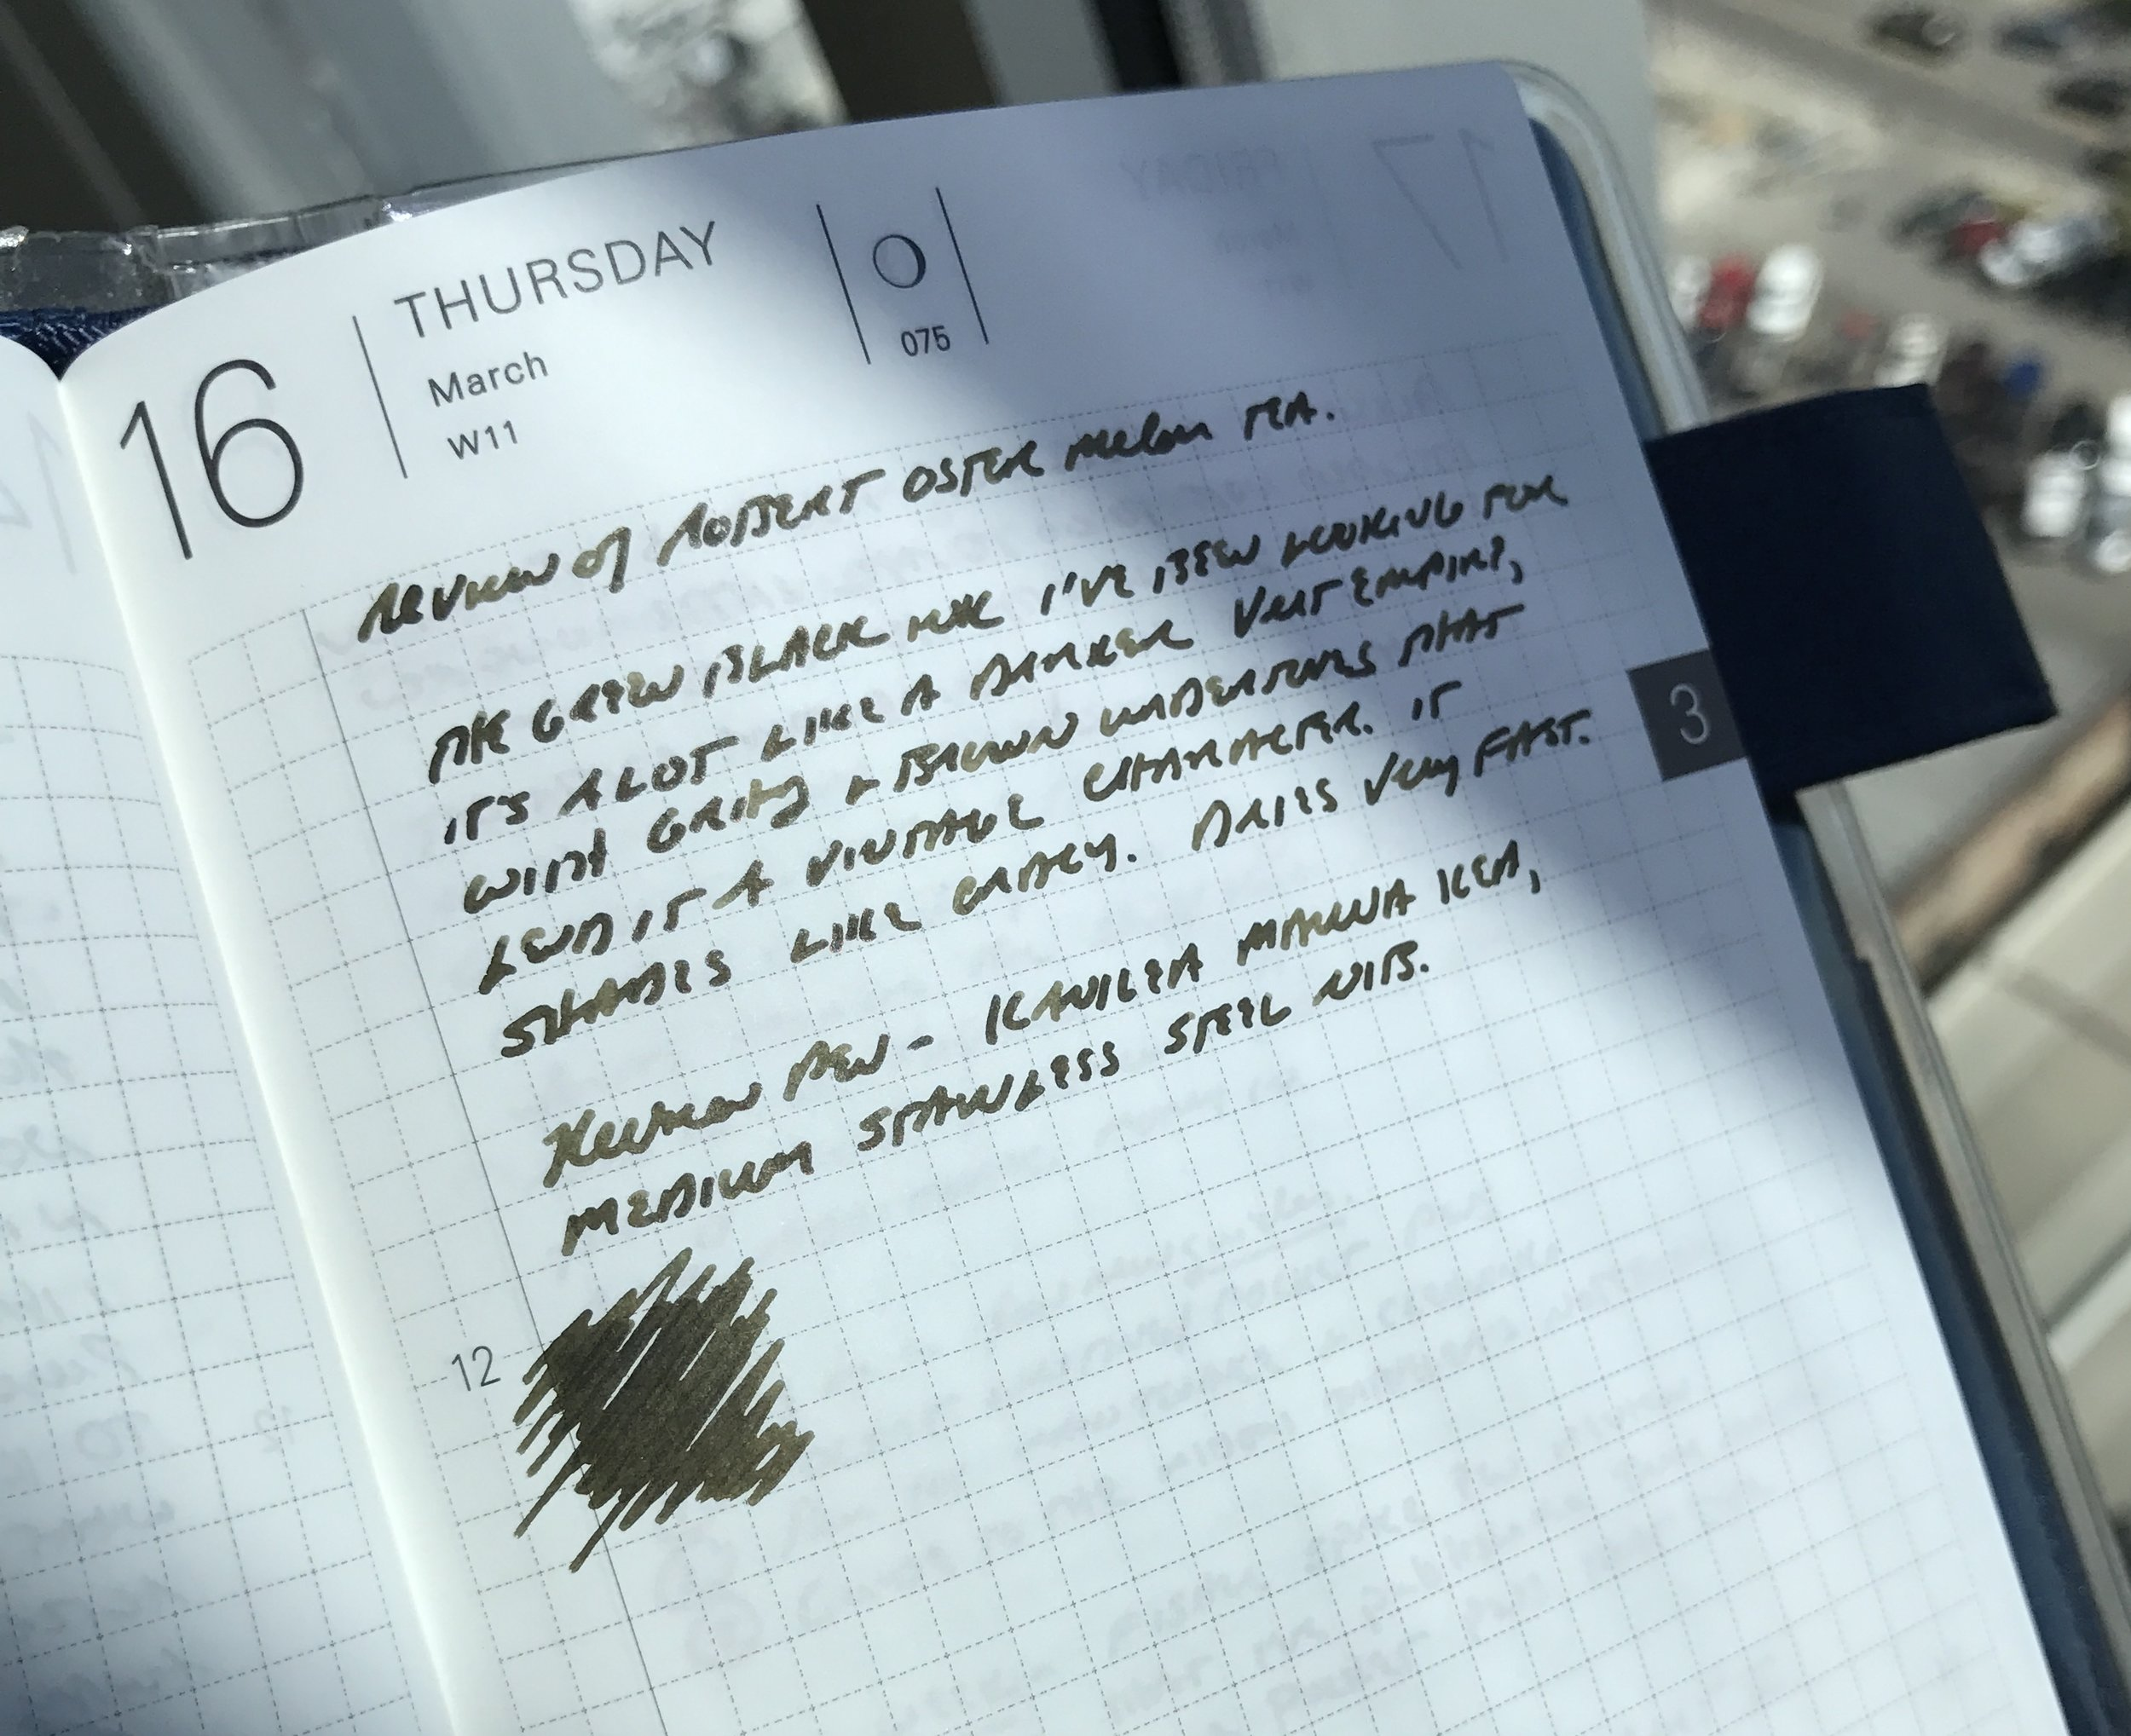 A writing sample on Tomoe River paper from my Hobonichi Planner. The pen used here was my Kanilea Pen Co. Mauna Kea with a medium nib.